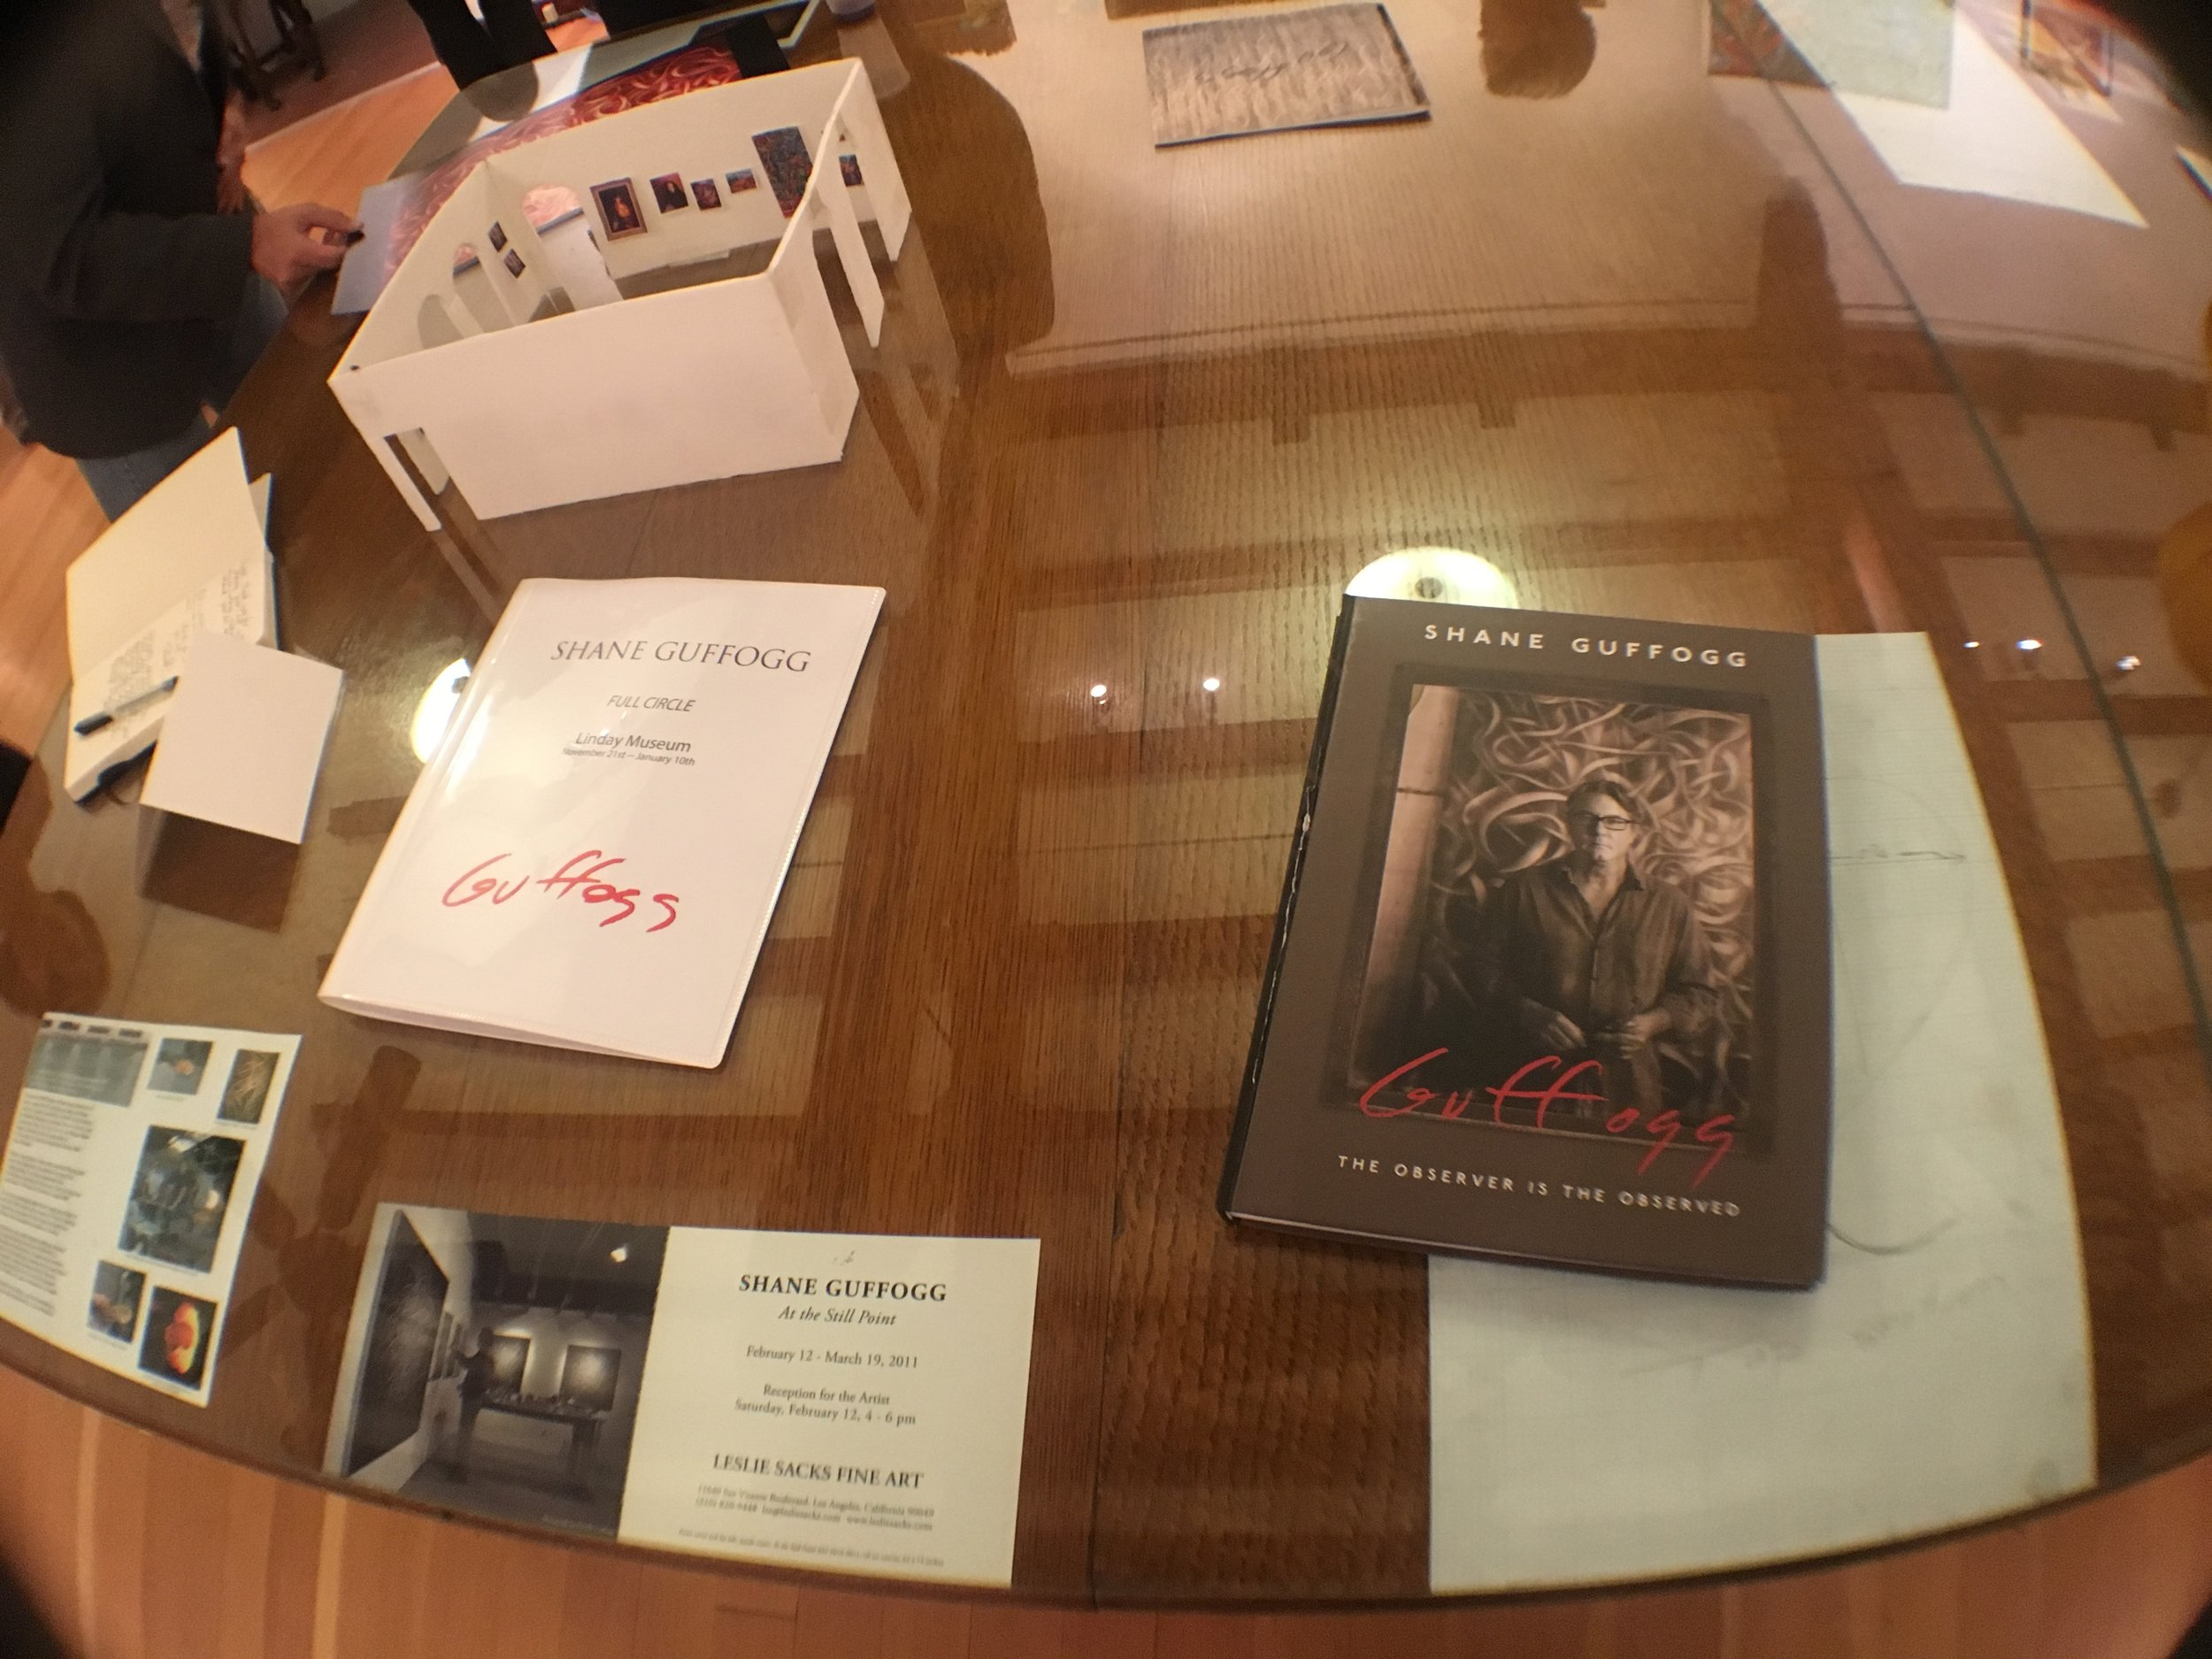 Guffogg Book on Table.jpg